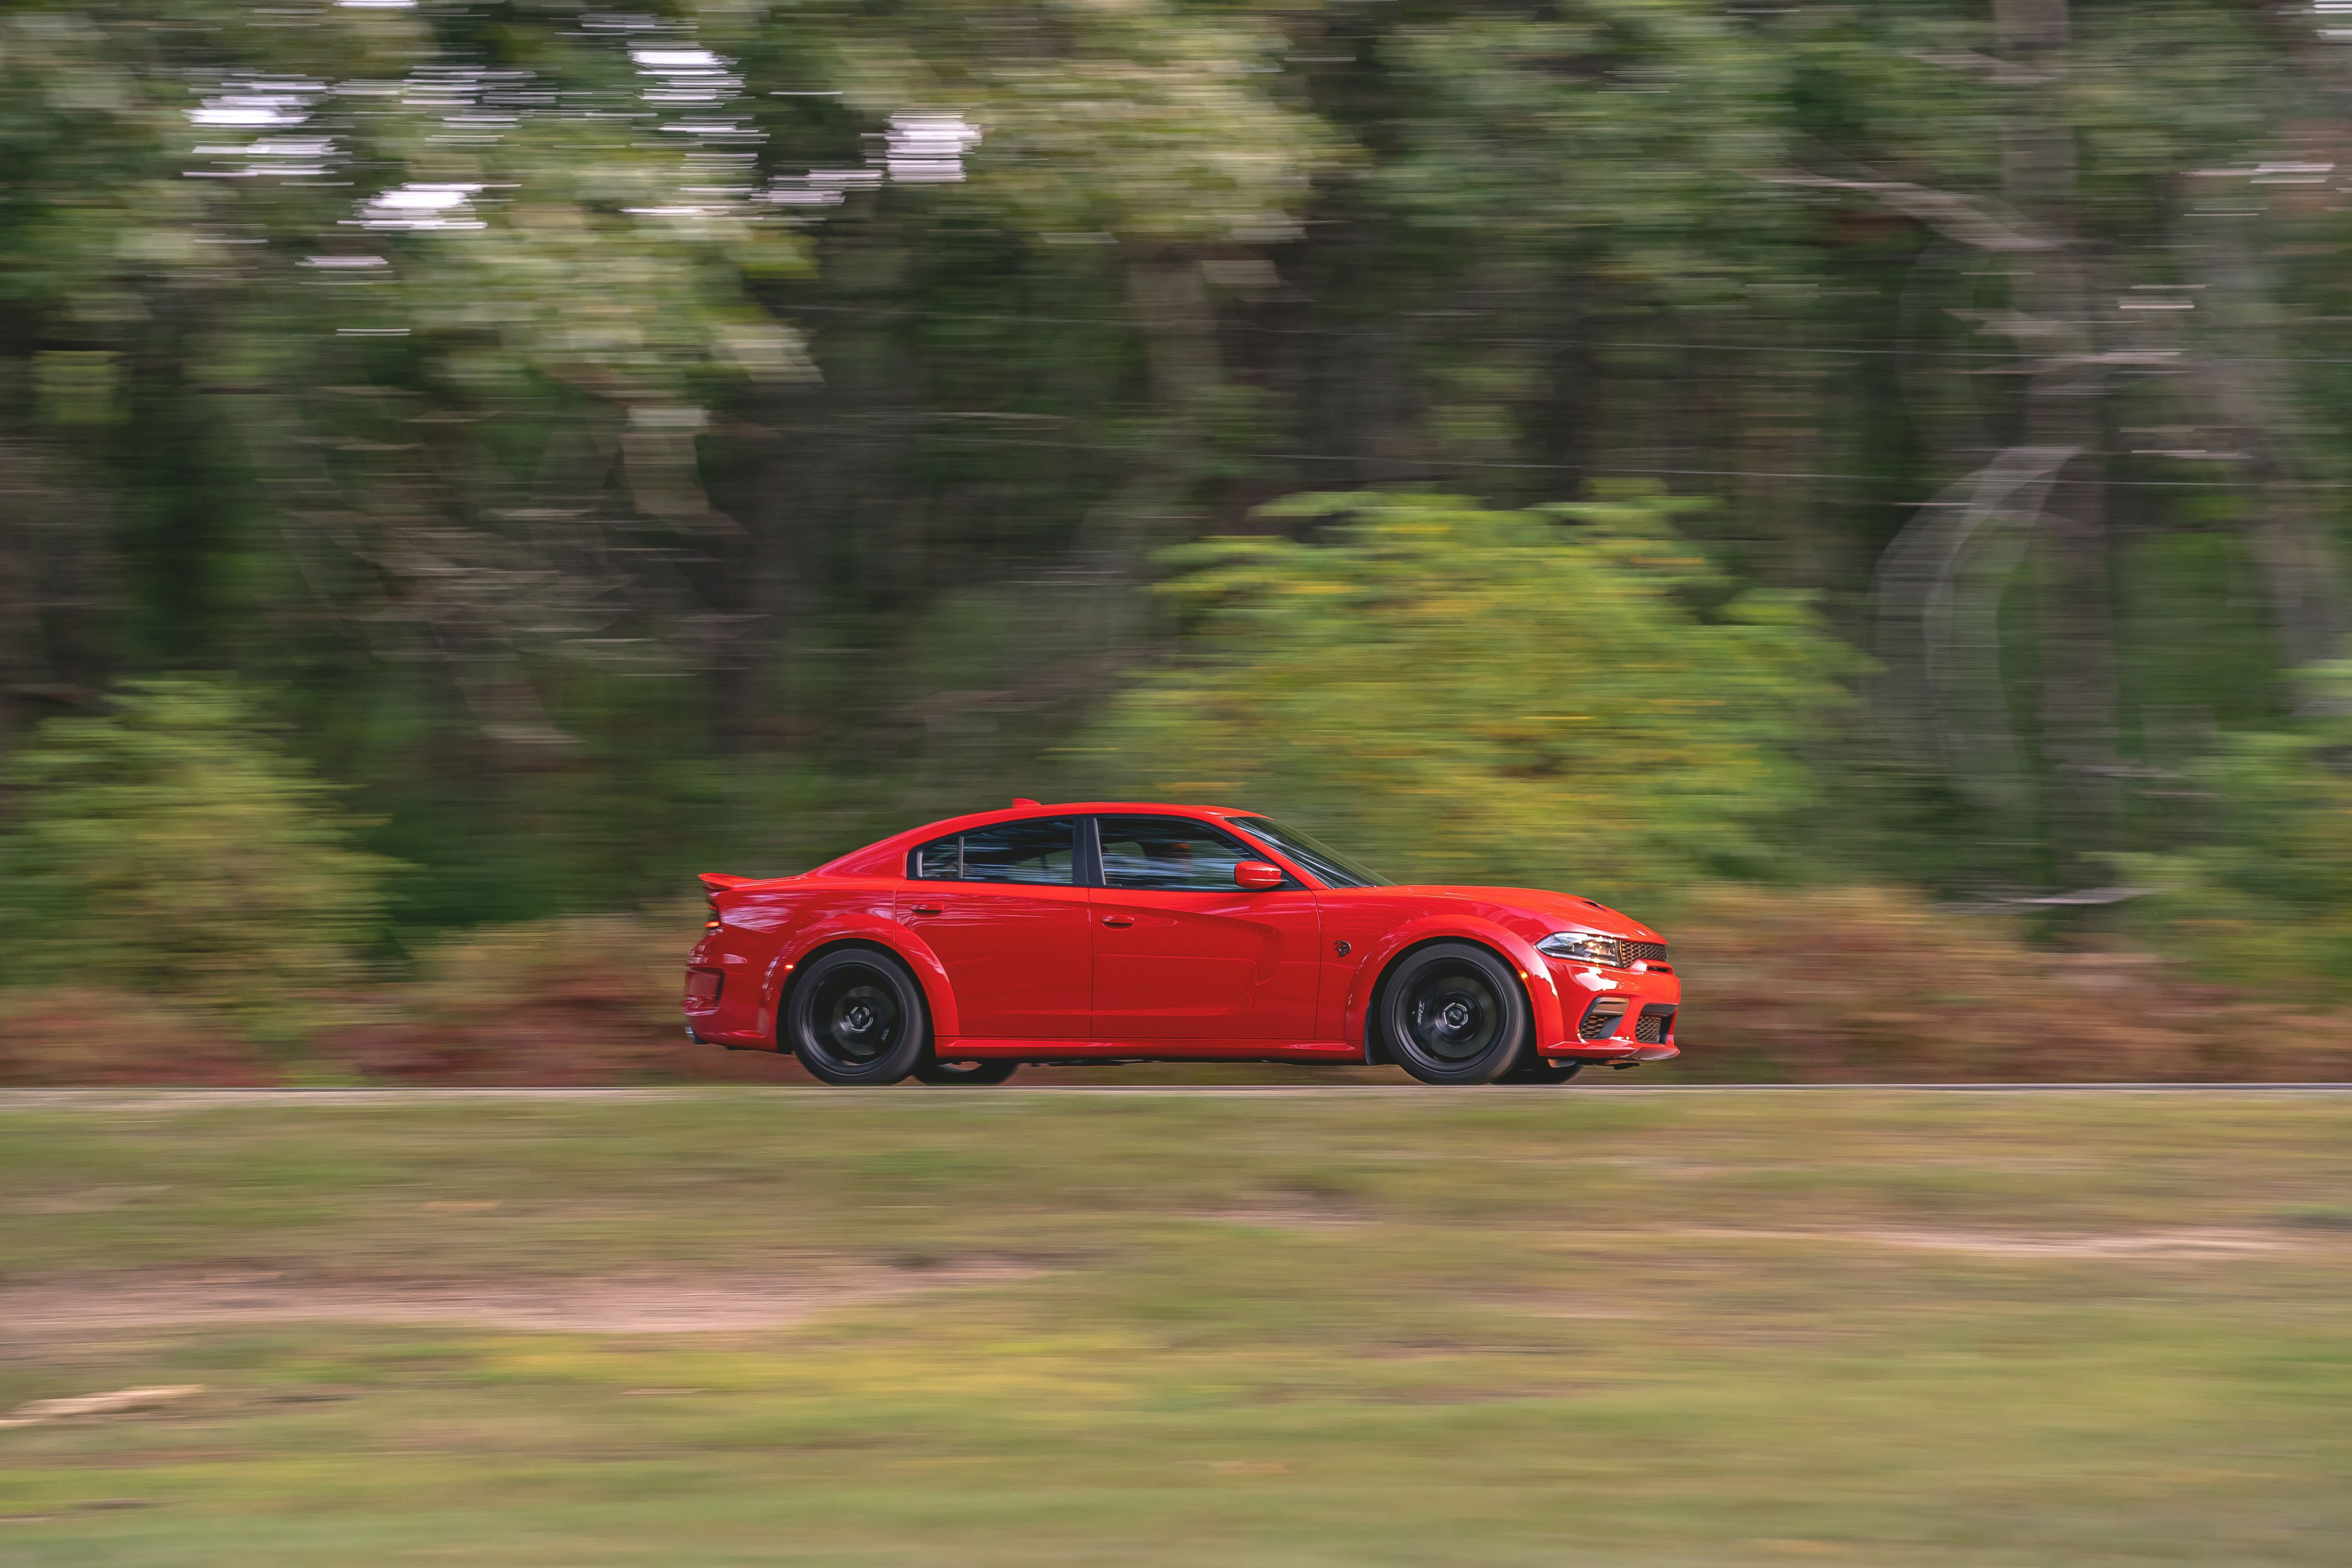 Tested 2021 Dodge Charger Hellcat Redeye Embodies The Muscle Car Ethos